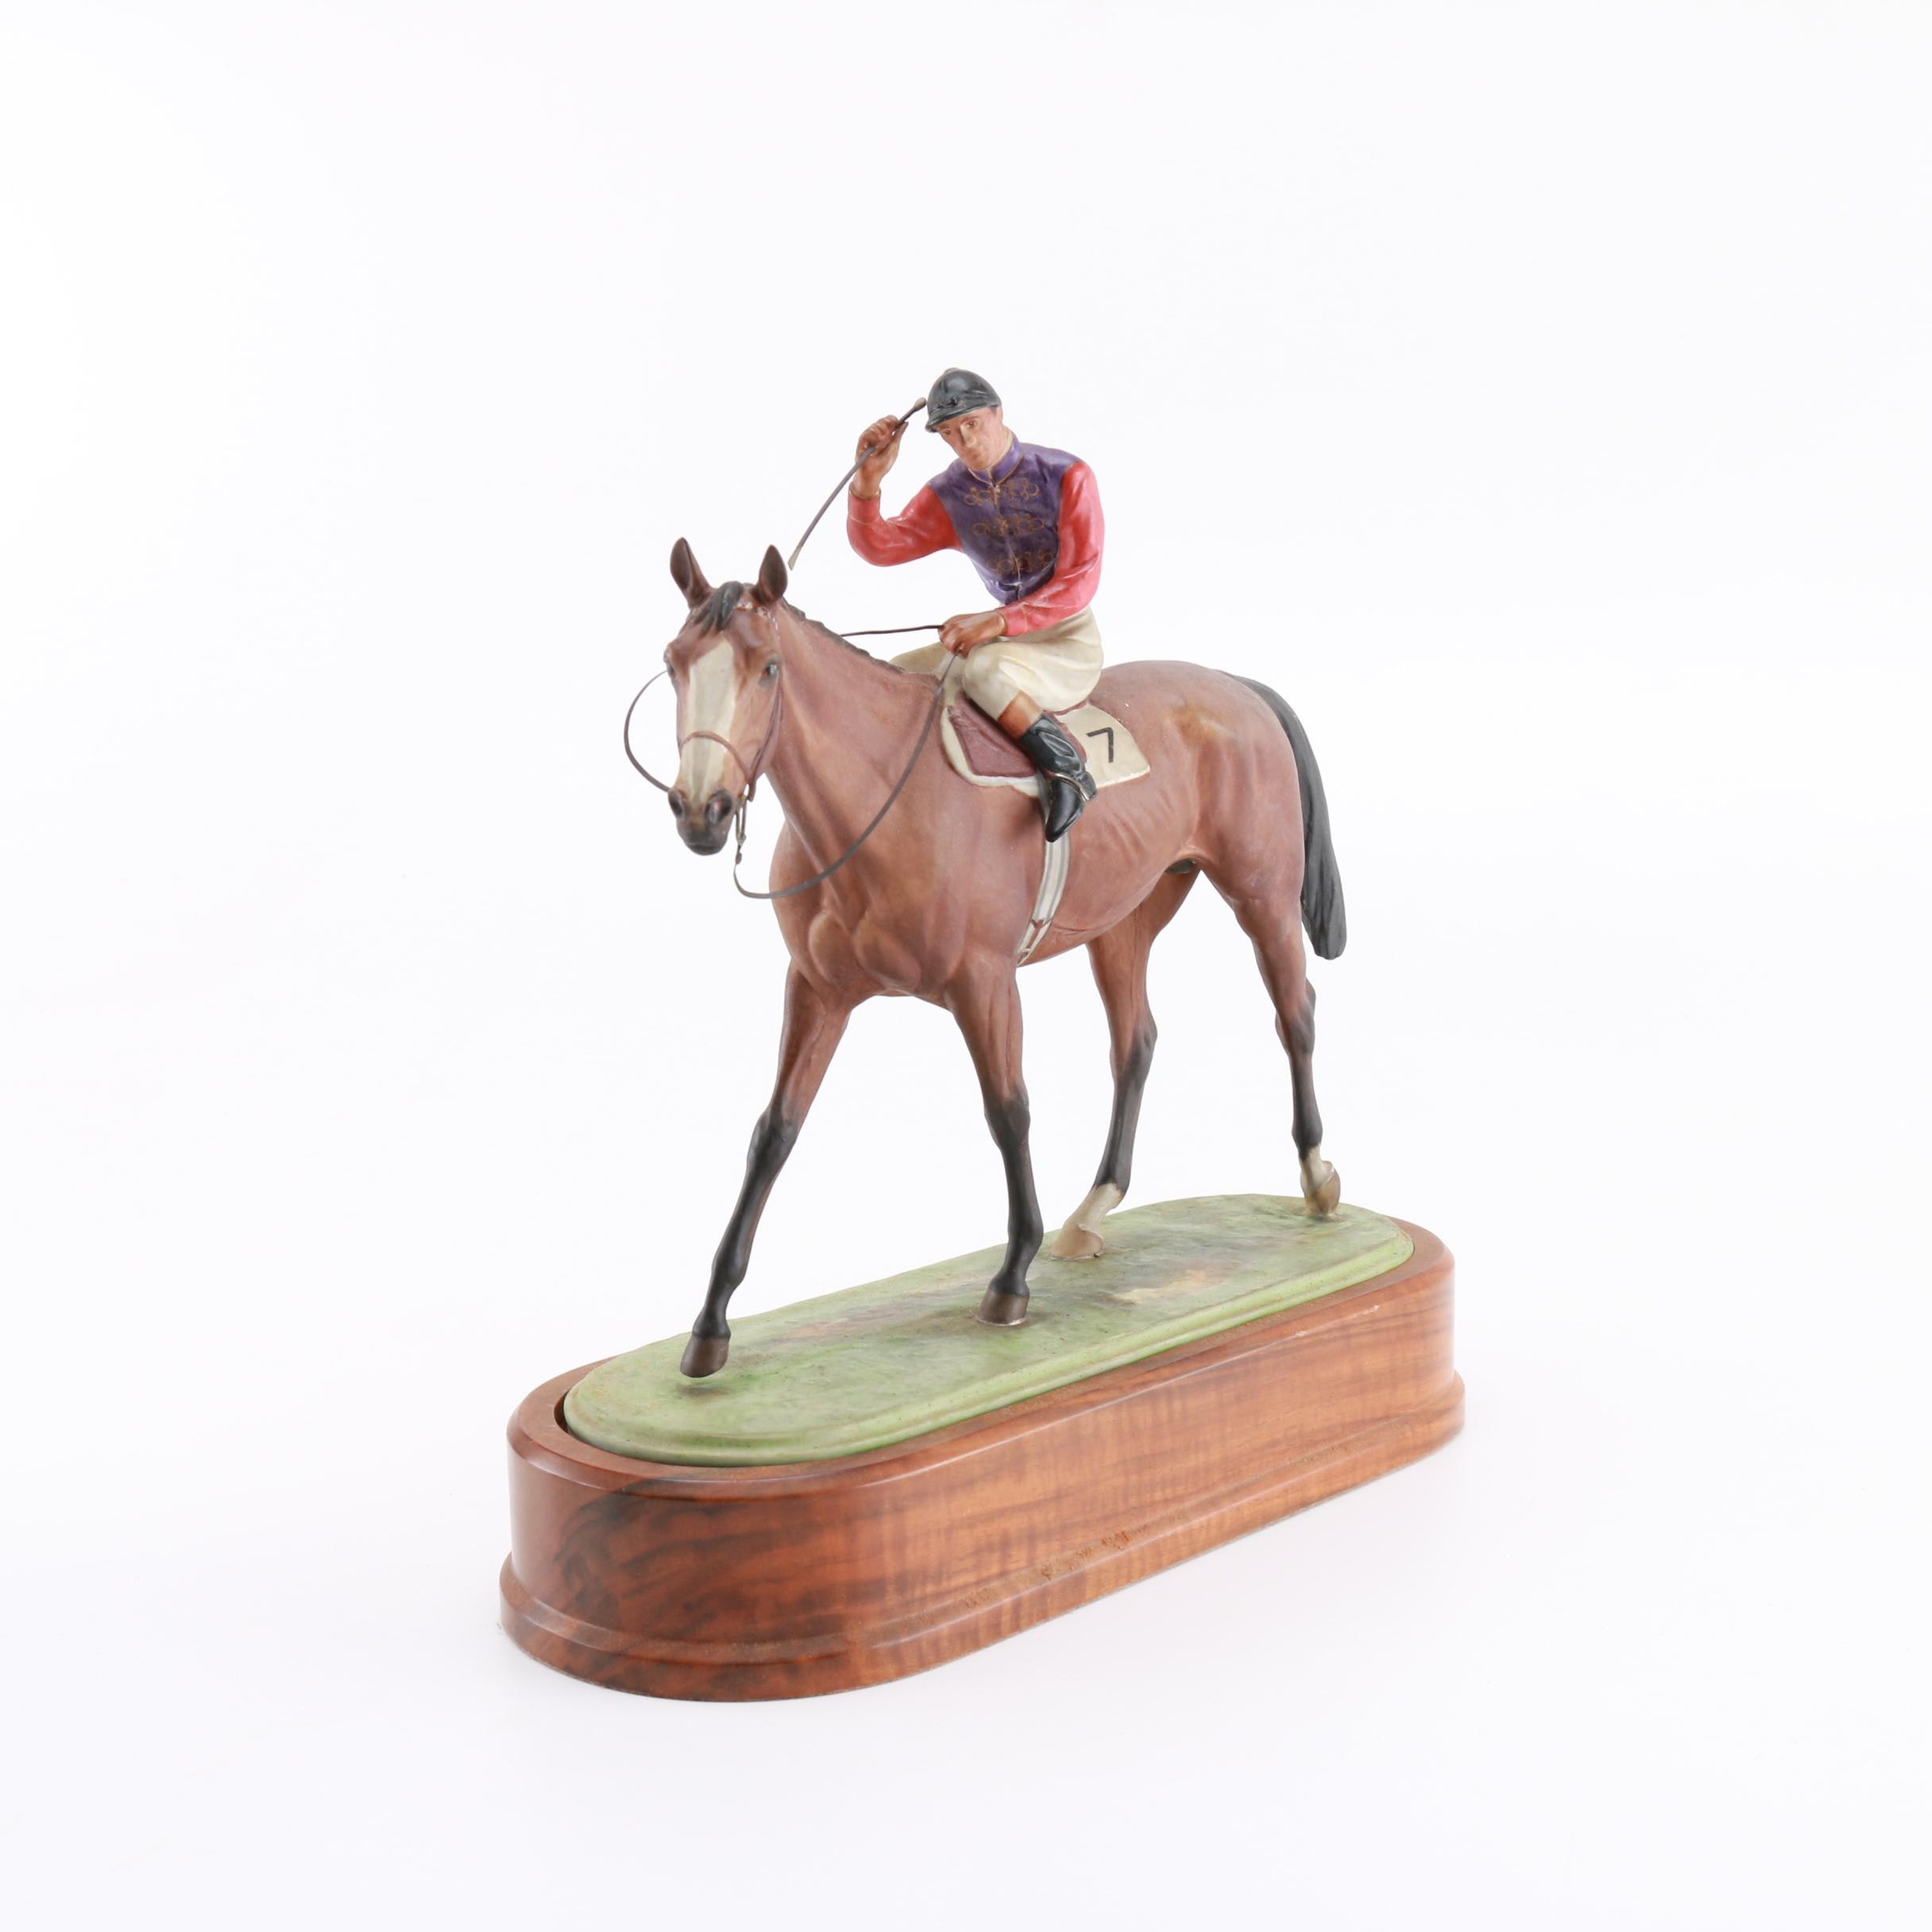 "Reproduction of Doris Lindner's 1959 Porcelain Sculpture ""The Winner"""